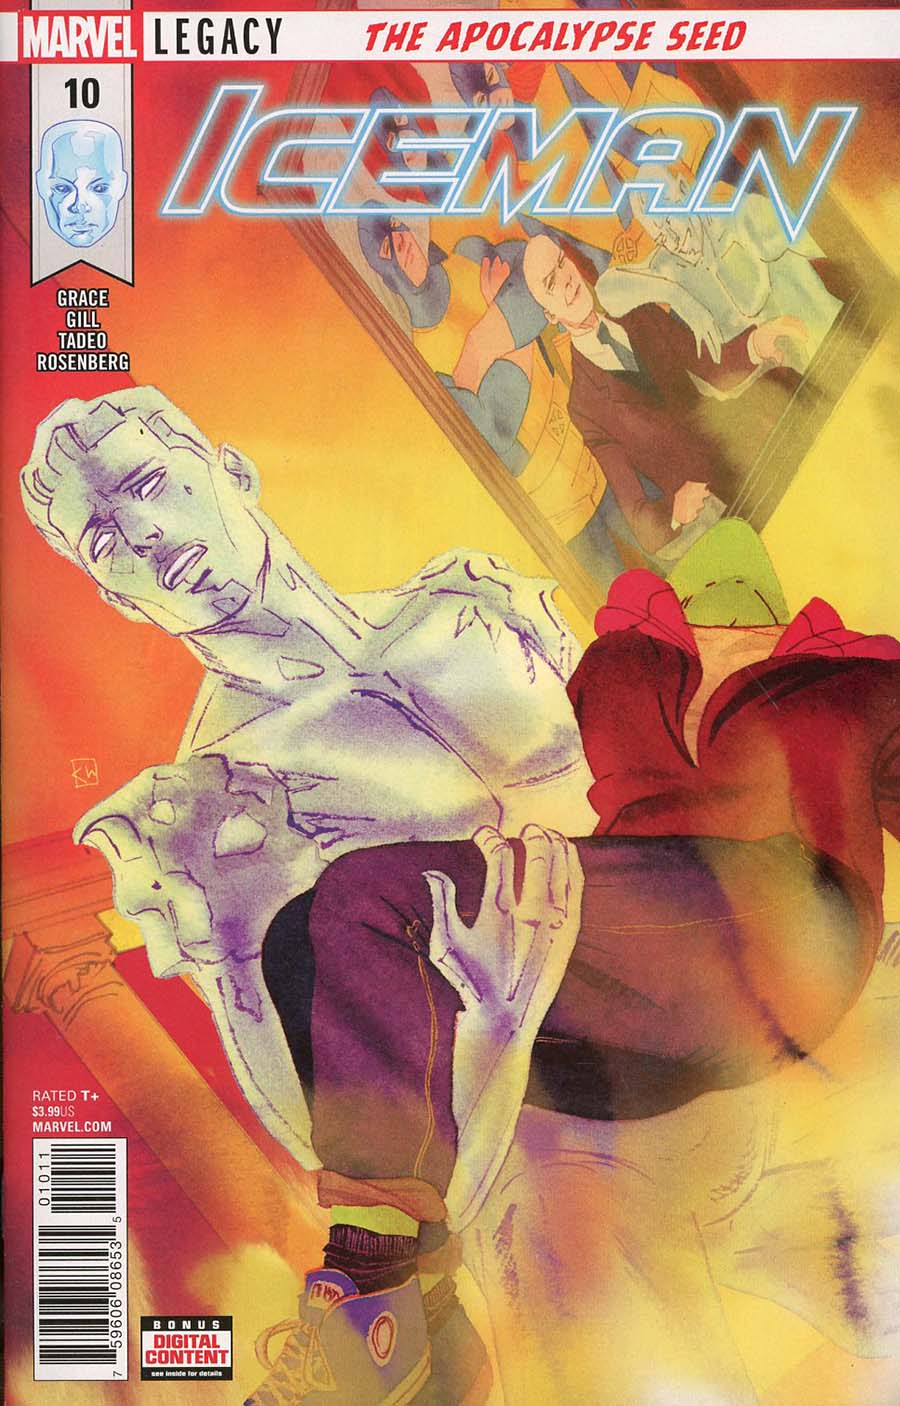 Iceman Vol 3 #10 (Marvel Legacy Tie-In)